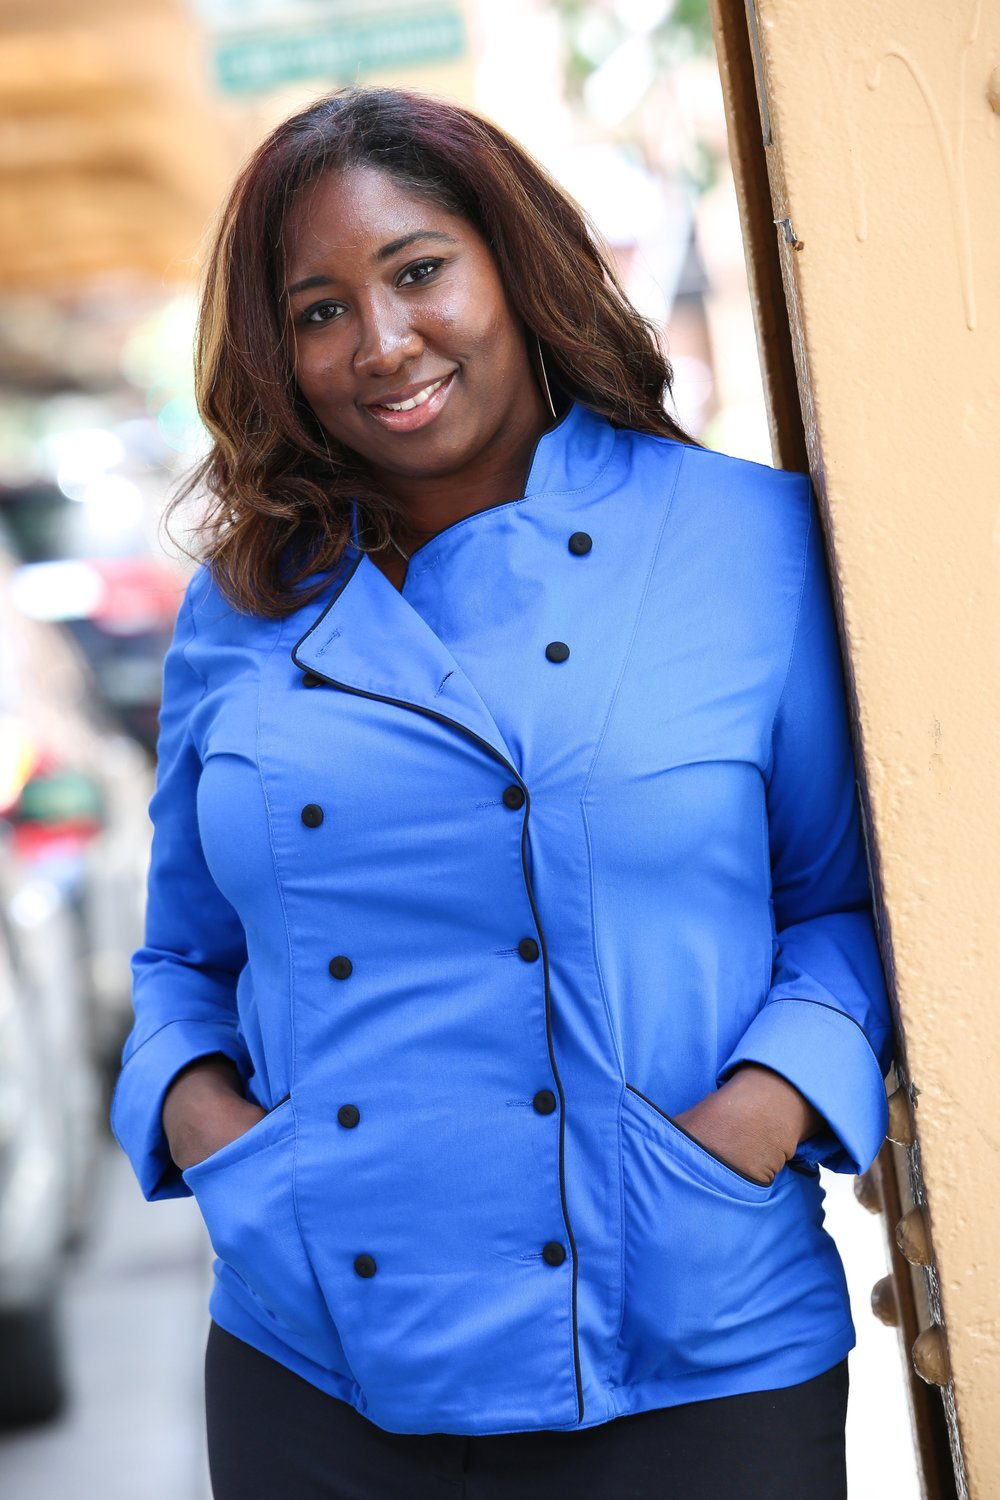 Tiffany Williams - CEO Exquisite Catering and Events